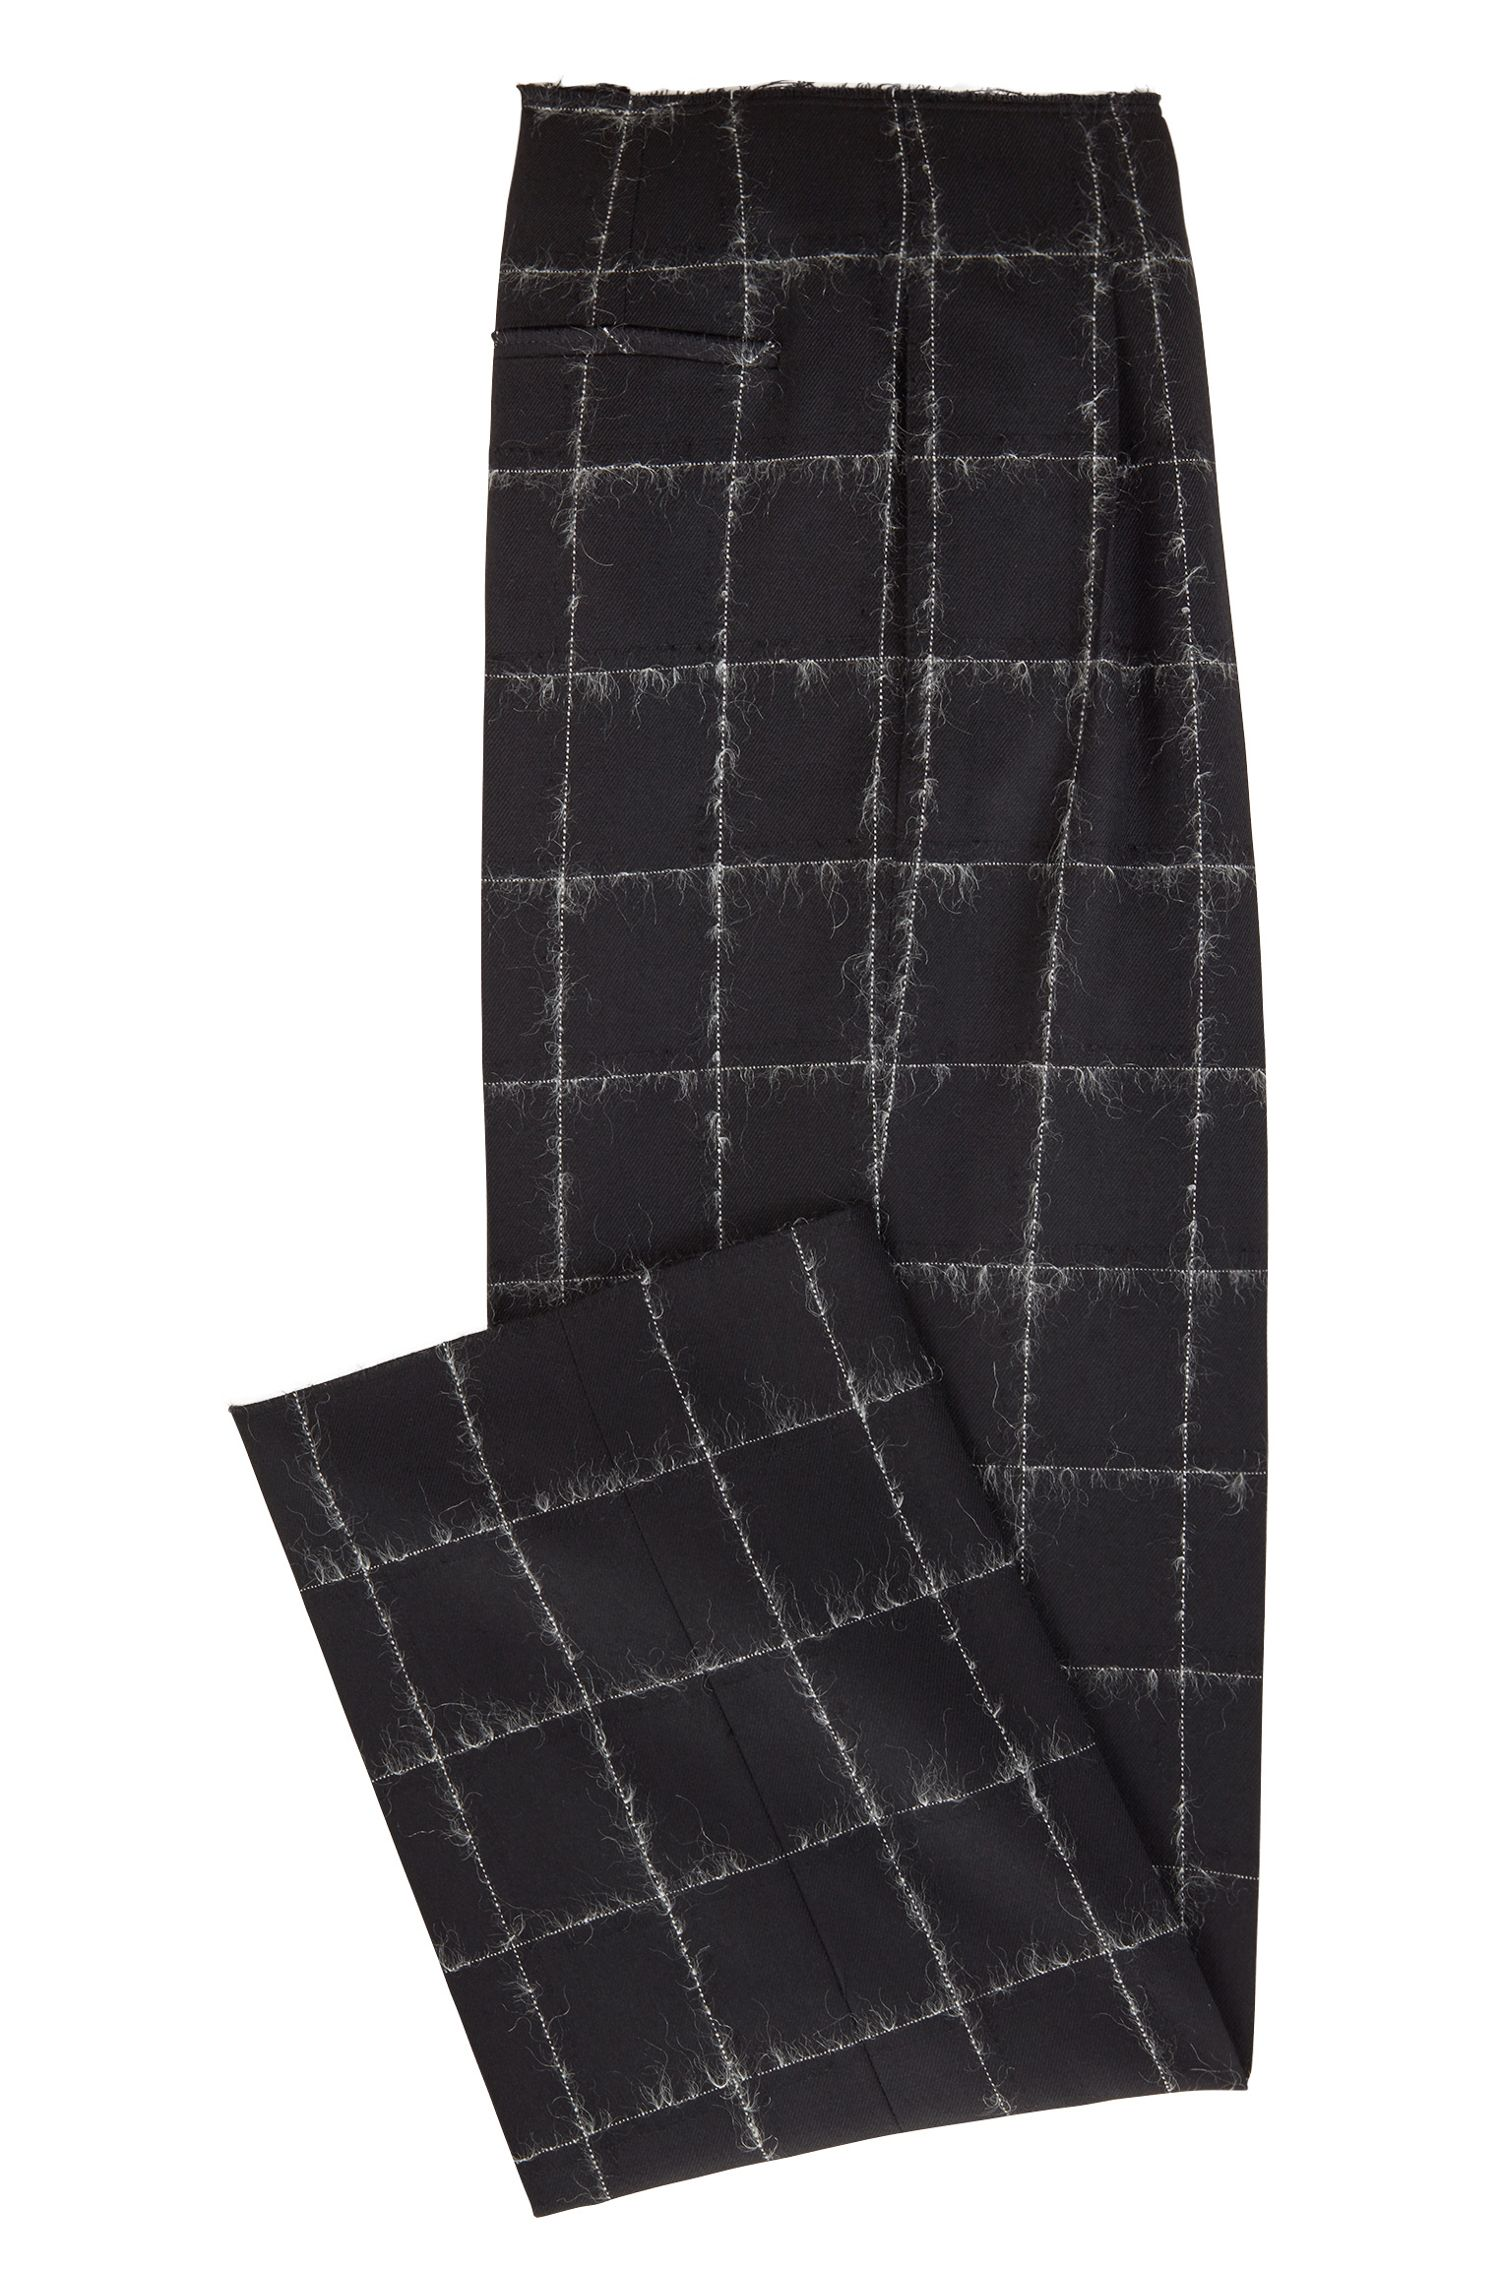 Gallery Collection wide-leg pants in a checkered wool blend, Patterned